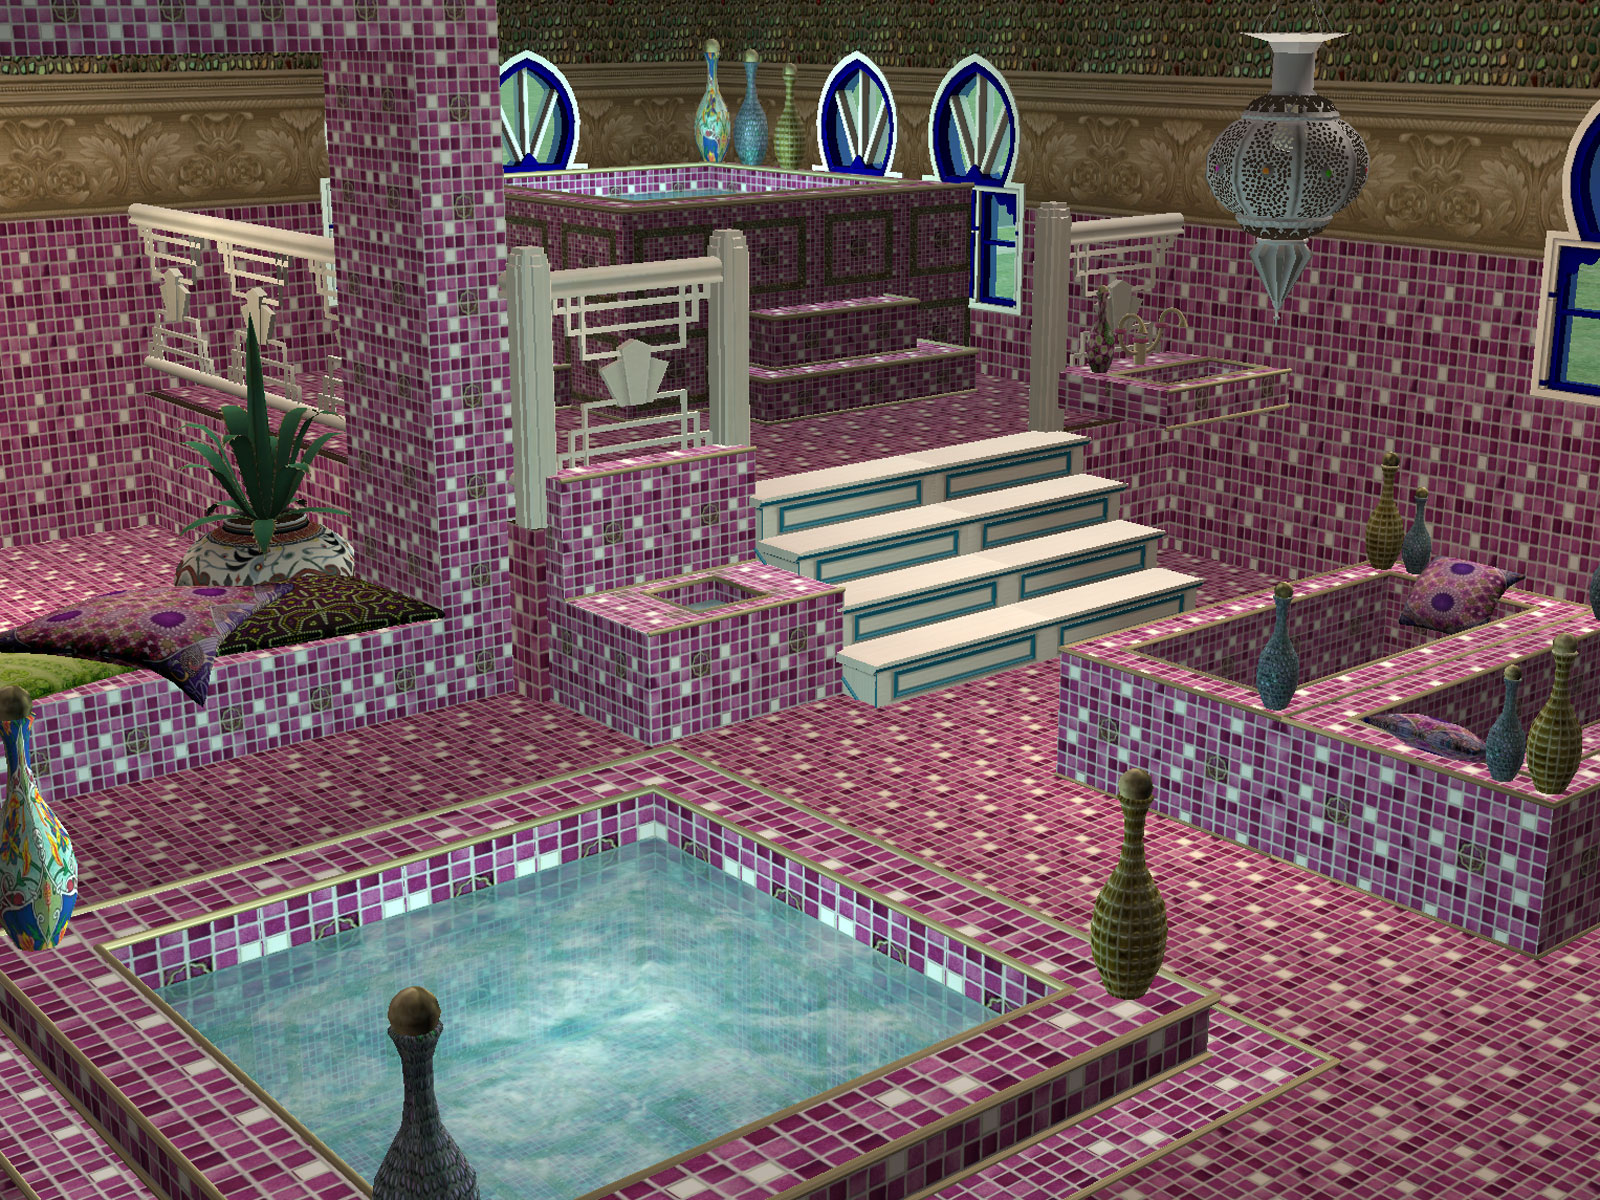 http://parsimonious.org/furniture2/files/k8-Souk_In_The_Bath_Pink.jpg